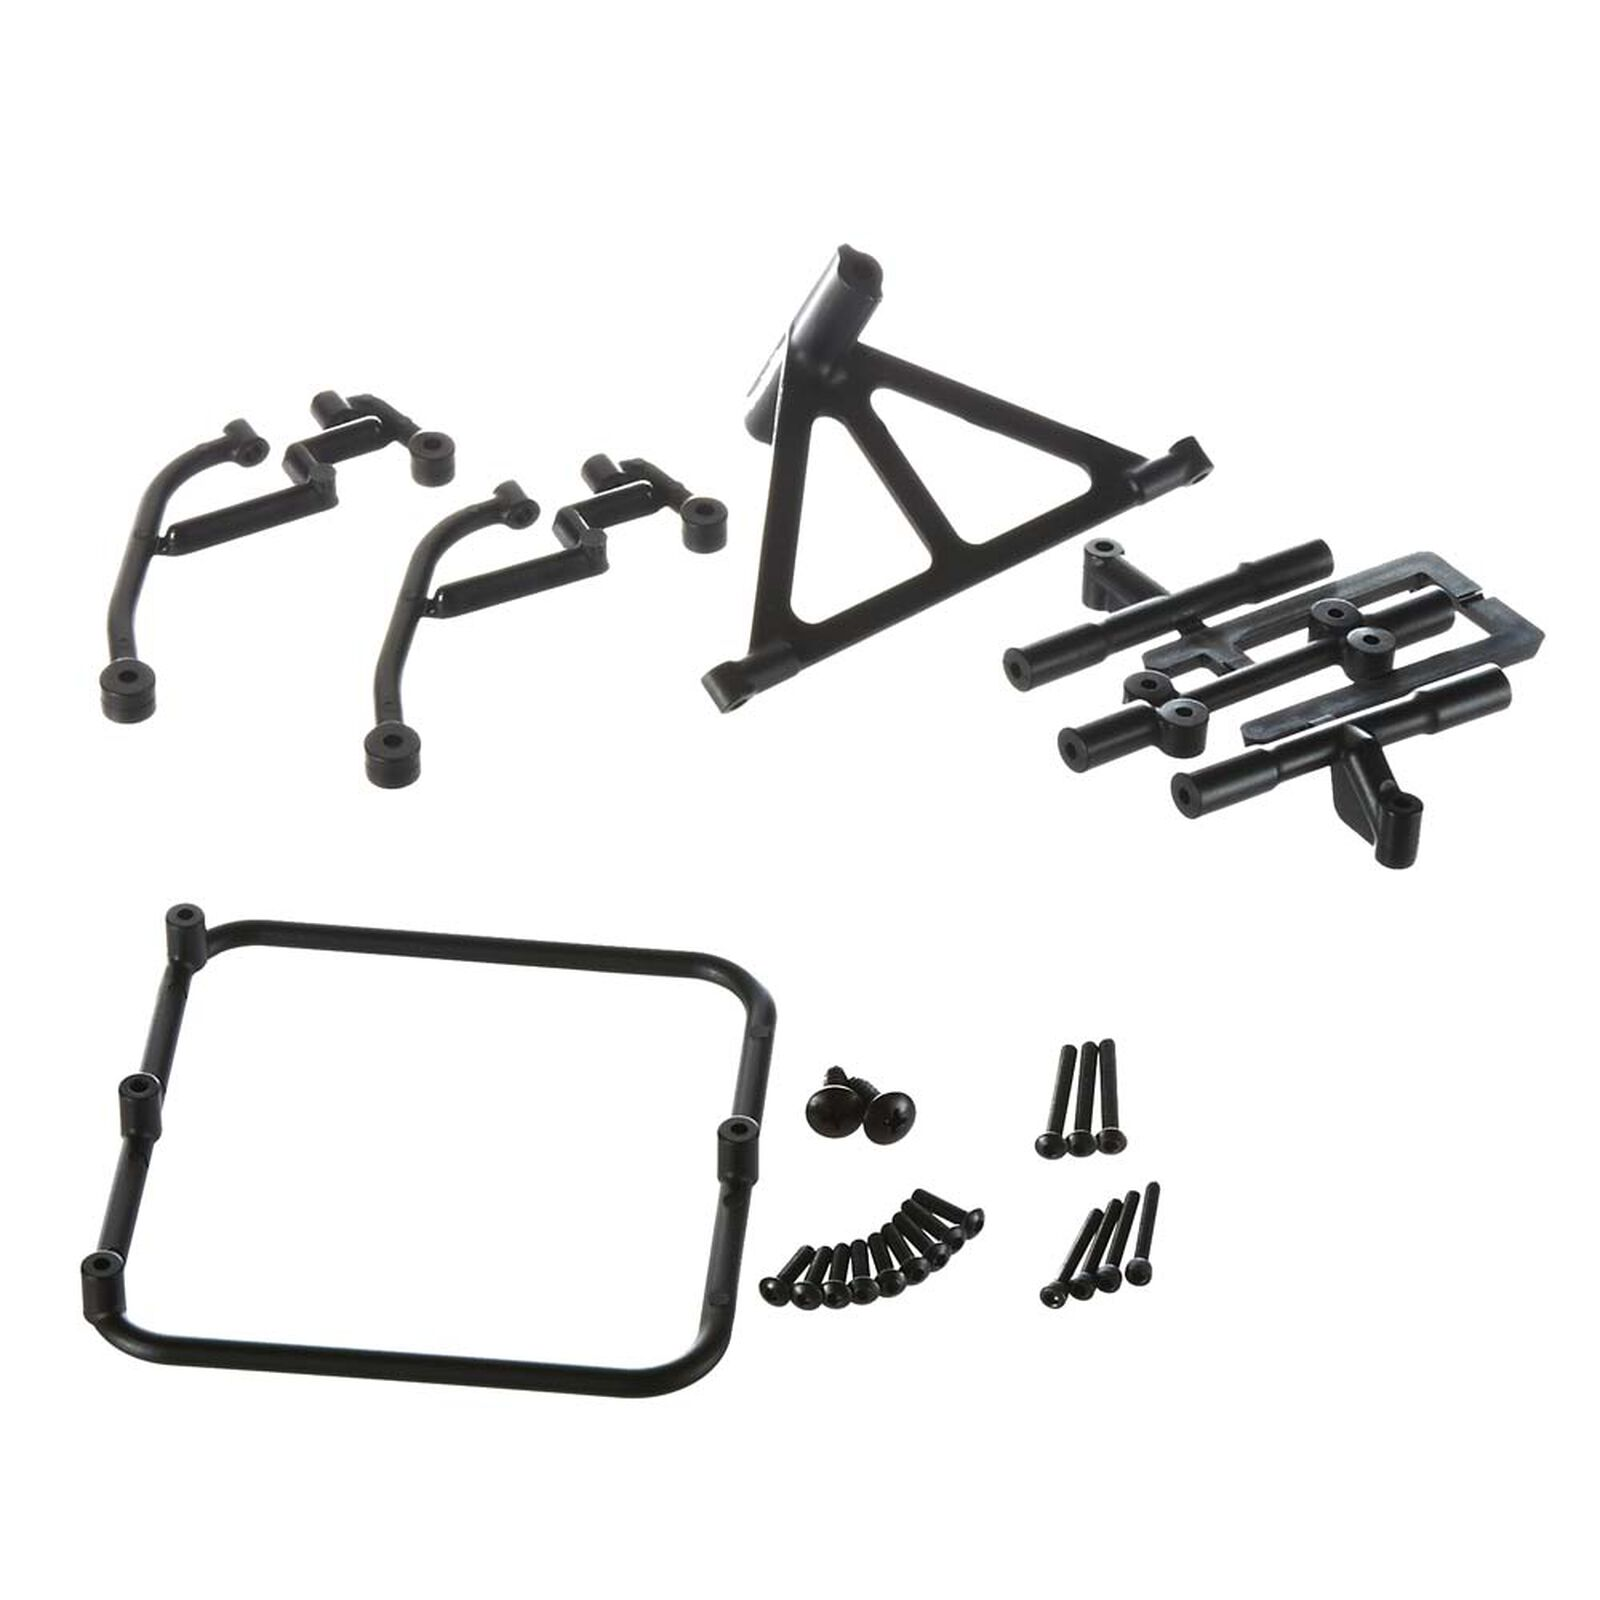 Dual Spare Tire Carrier: Slash 2WD and 4x4